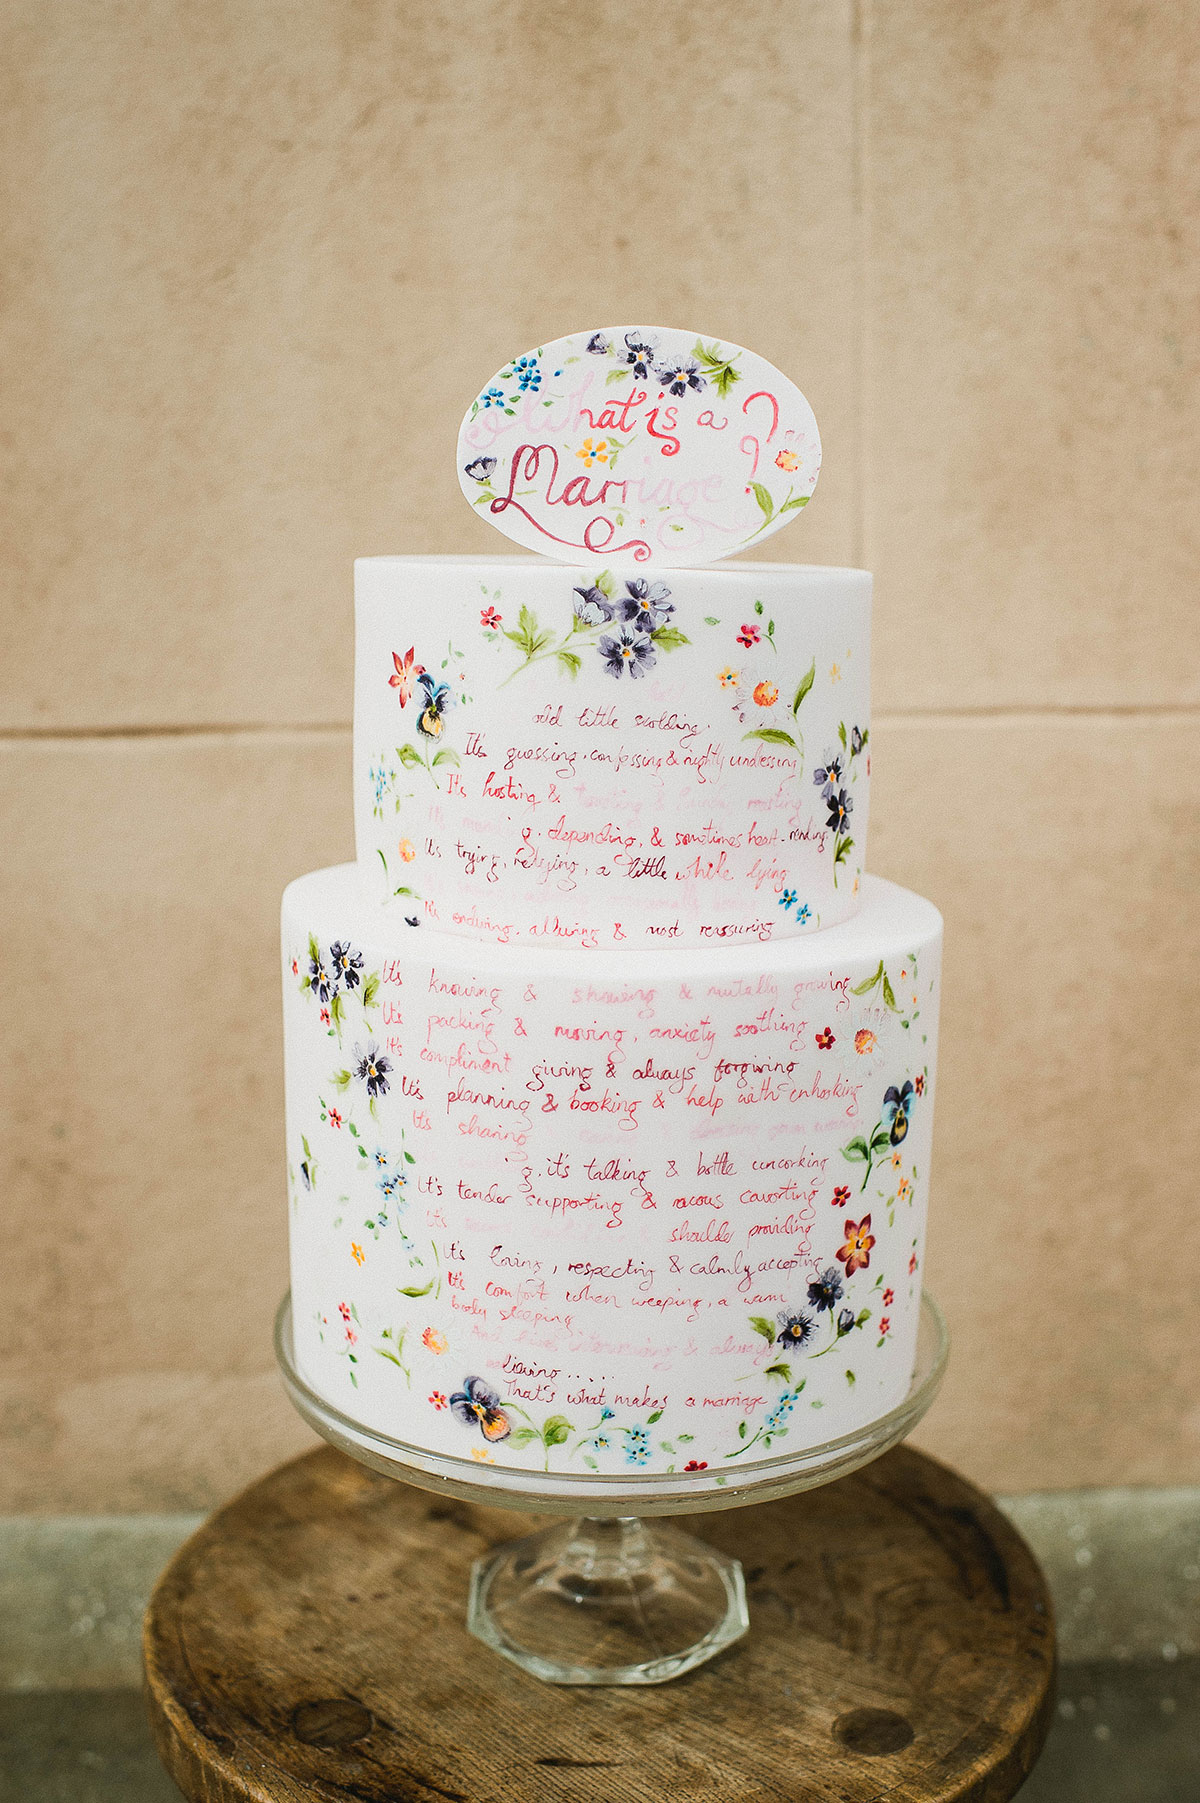 Wedding cakes | Nevie-Pie Cakes